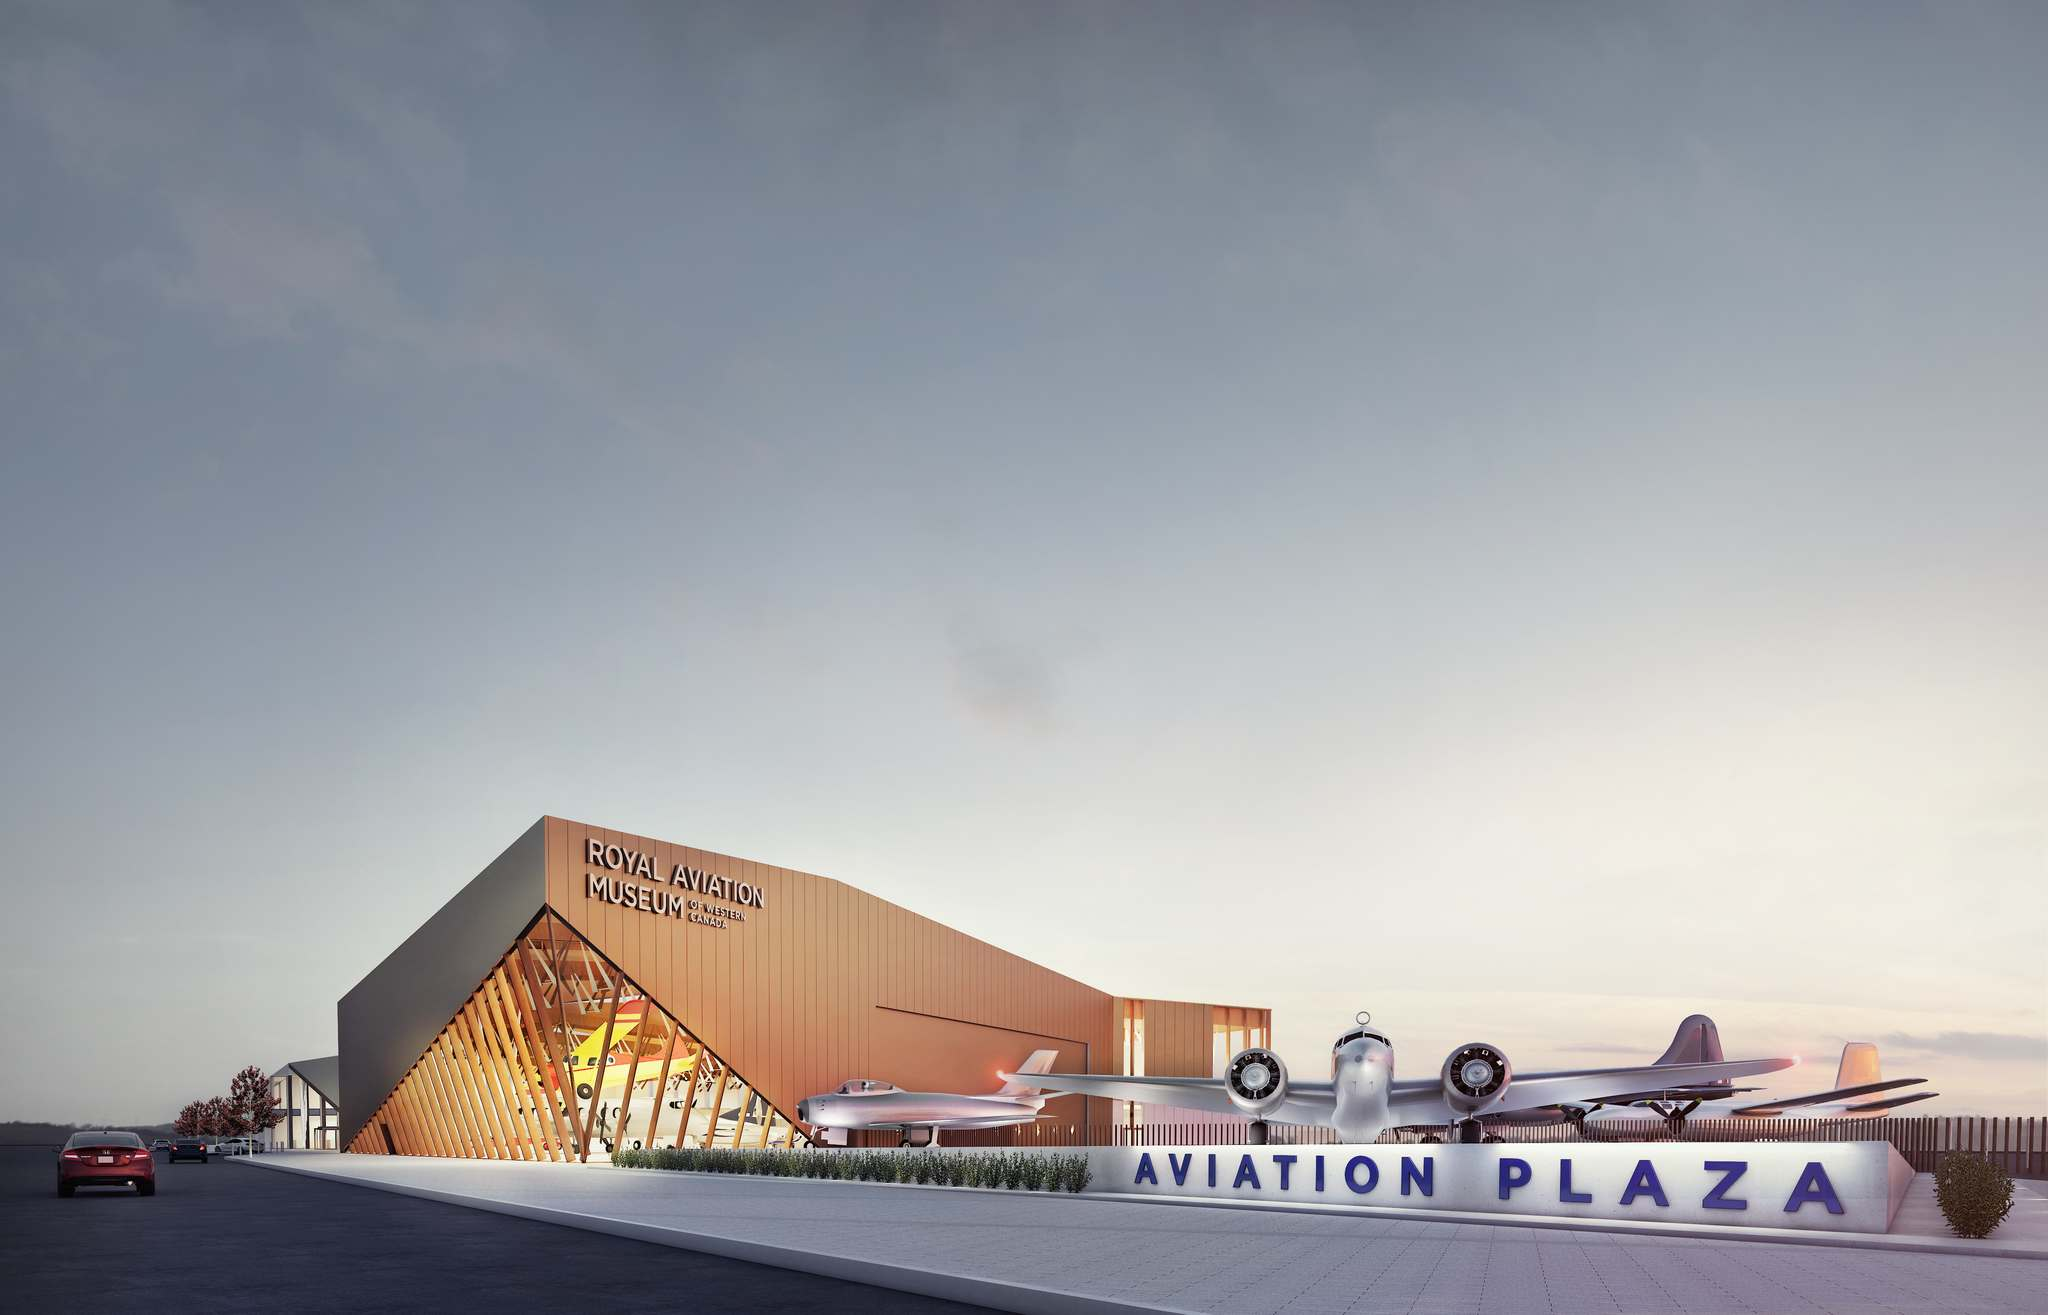 It'll be a homecoming when the planes all return to the 86,000 square-foot museum — about the size of a Canadian football field — and join two newly restored aircraft that will be added to the exhibits.